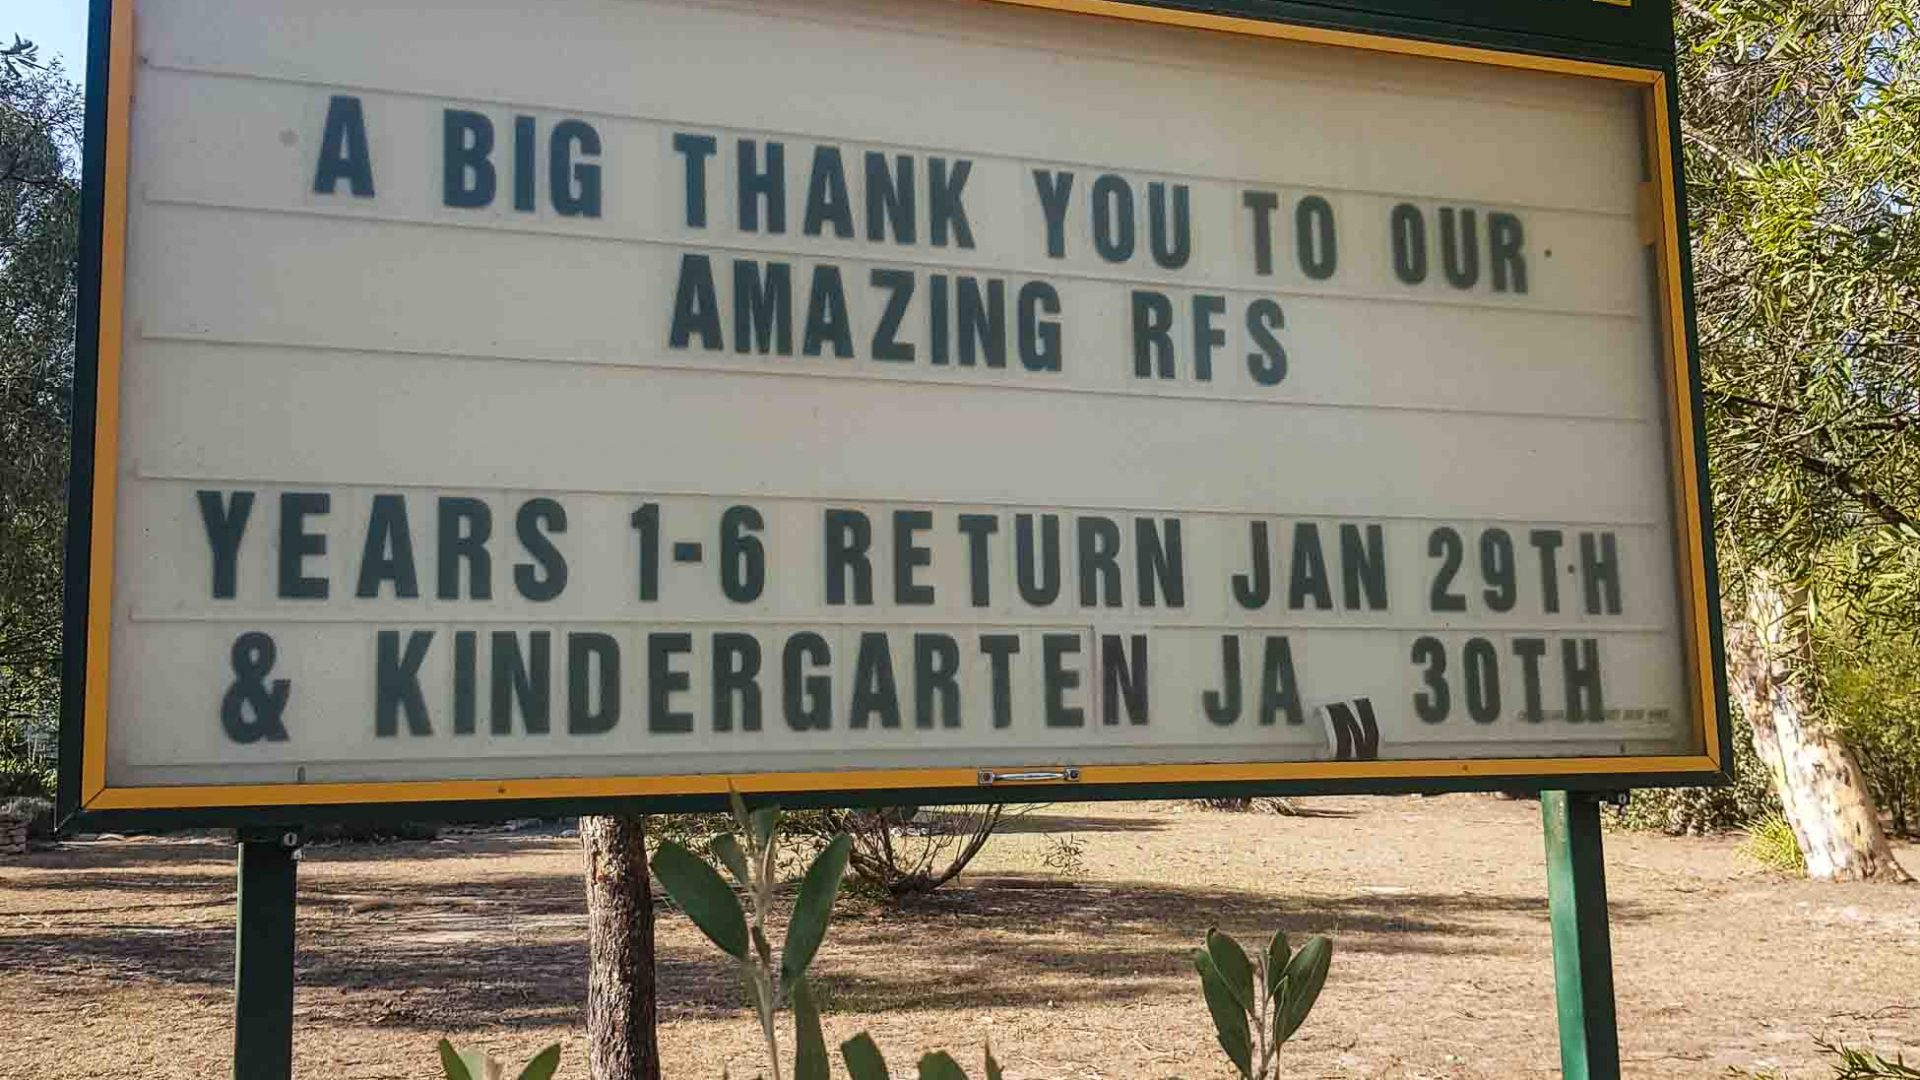 A thank-you message at Penrose School, near Bundanoon, on the first day back from the summer holidays.